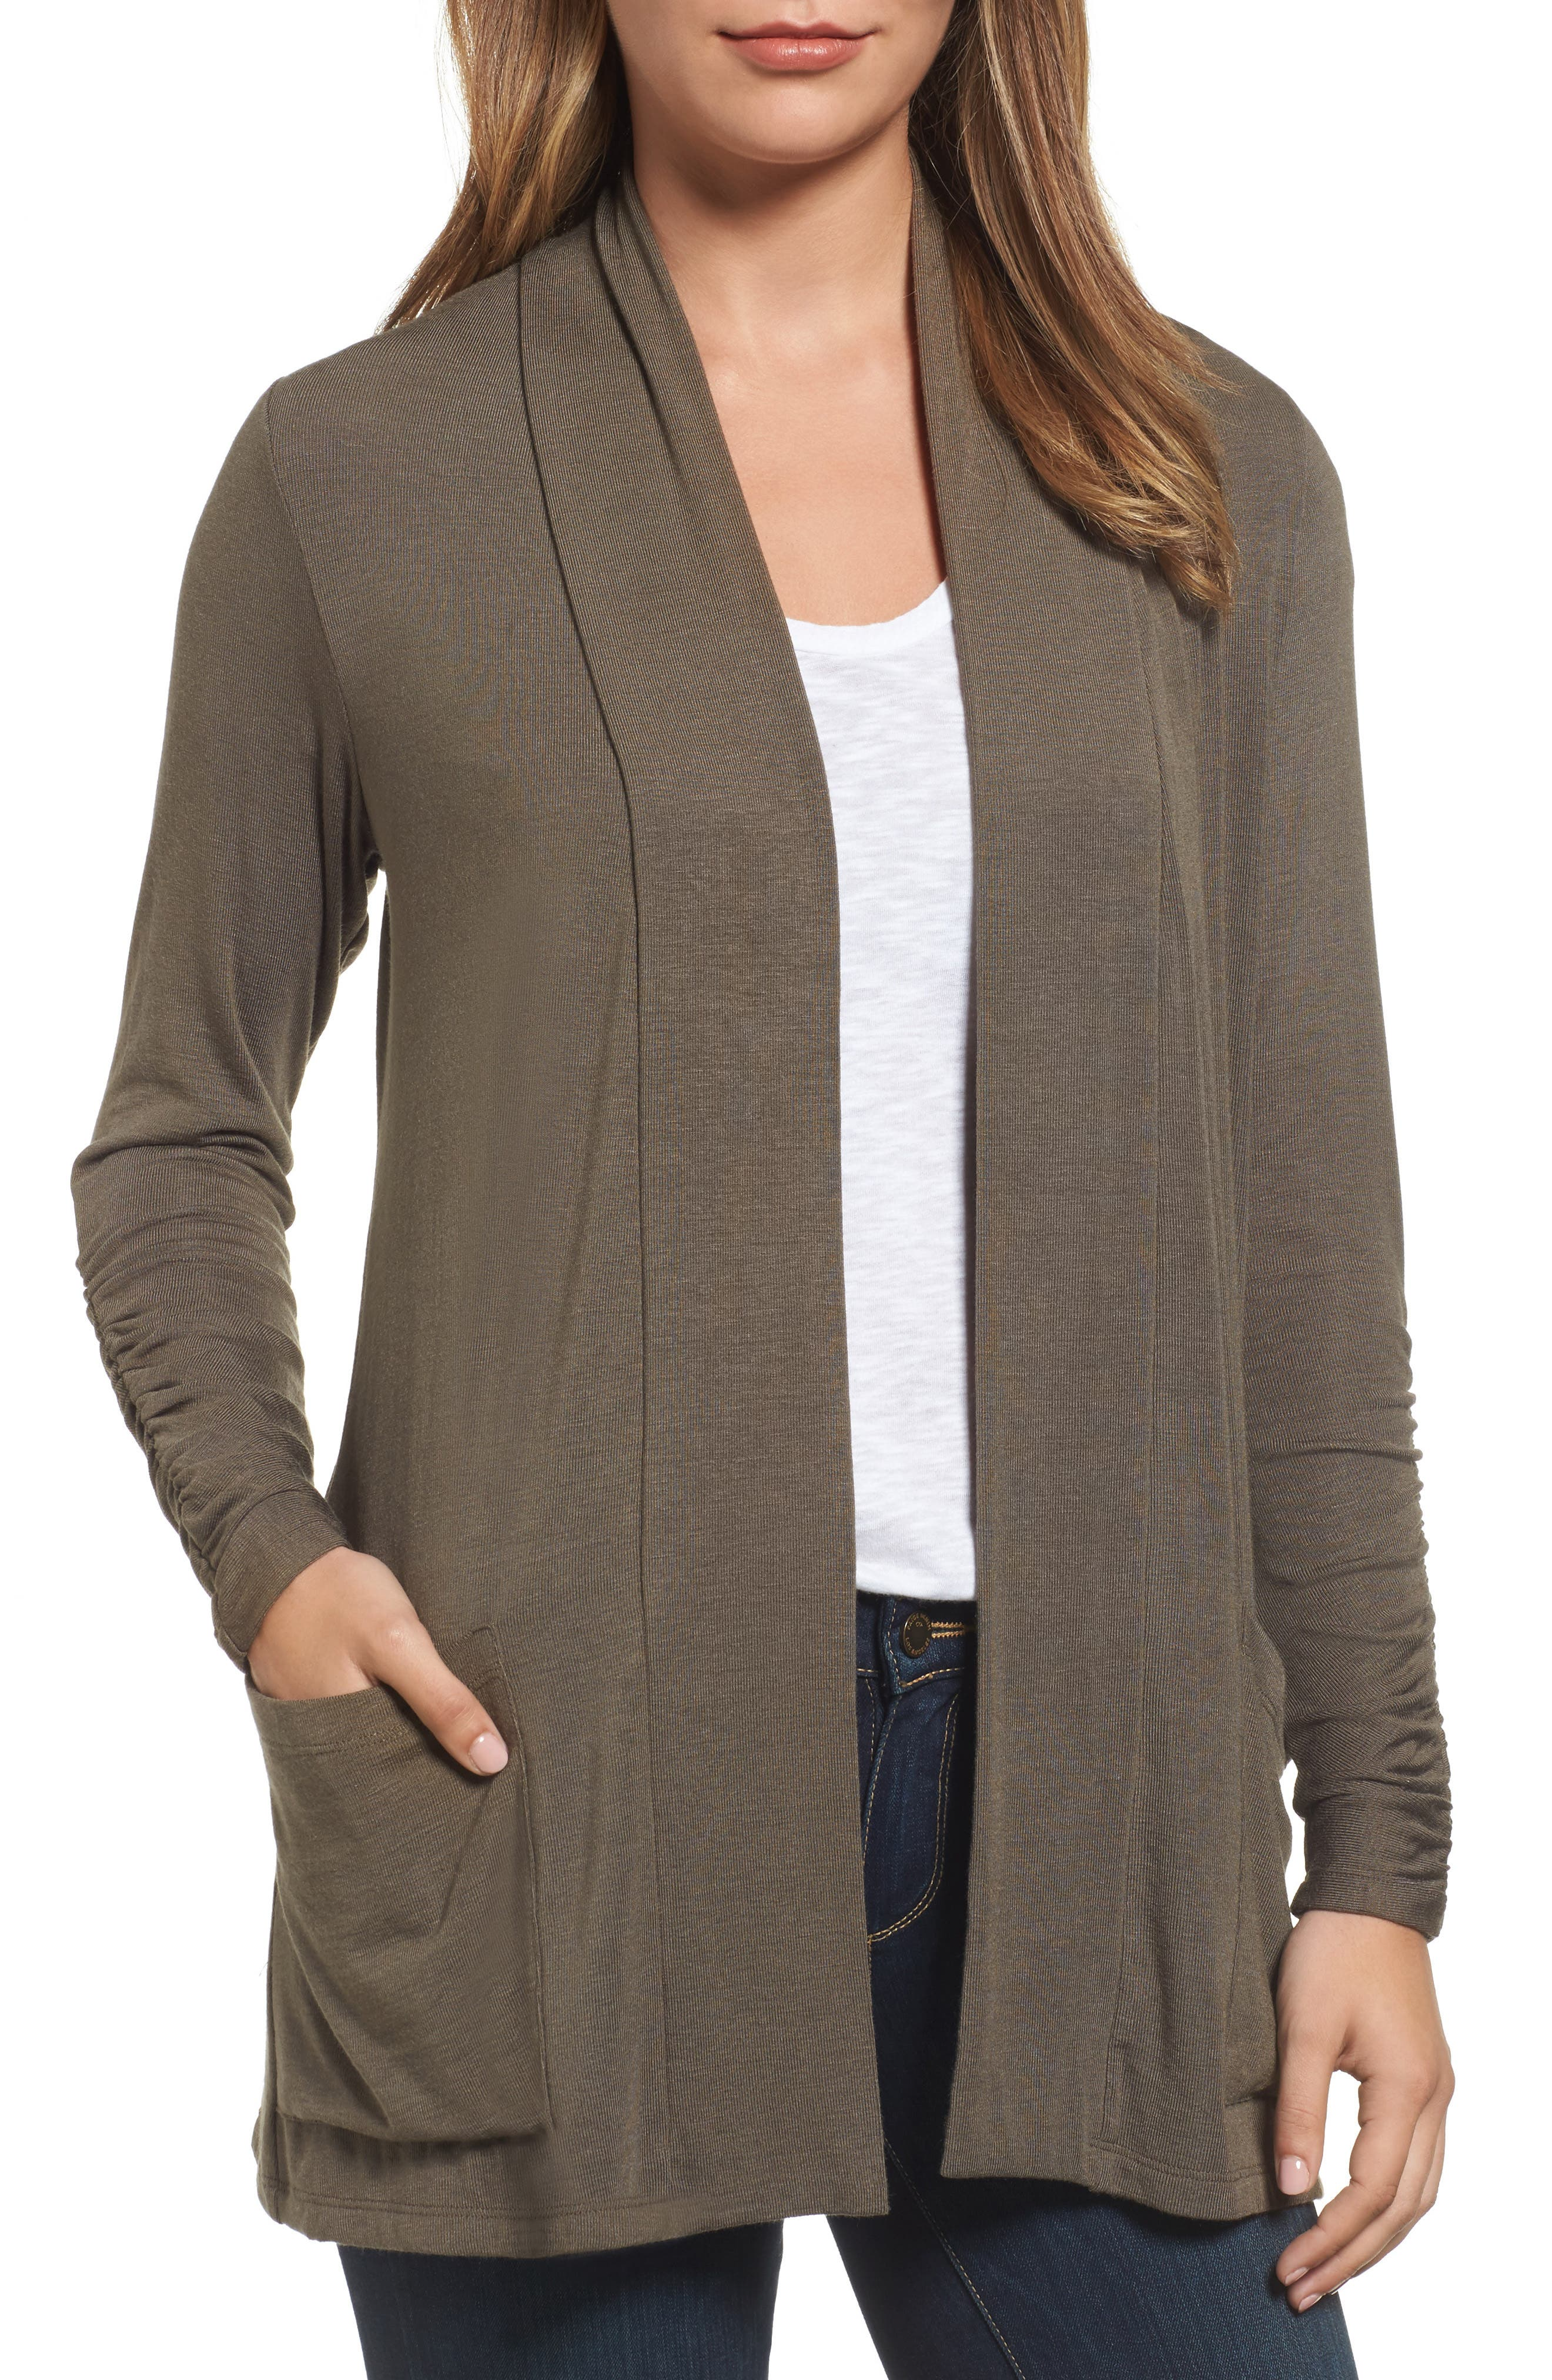 Ruched Sleeve Cardigan,                             Main thumbnail 1, color,                             OLIVE